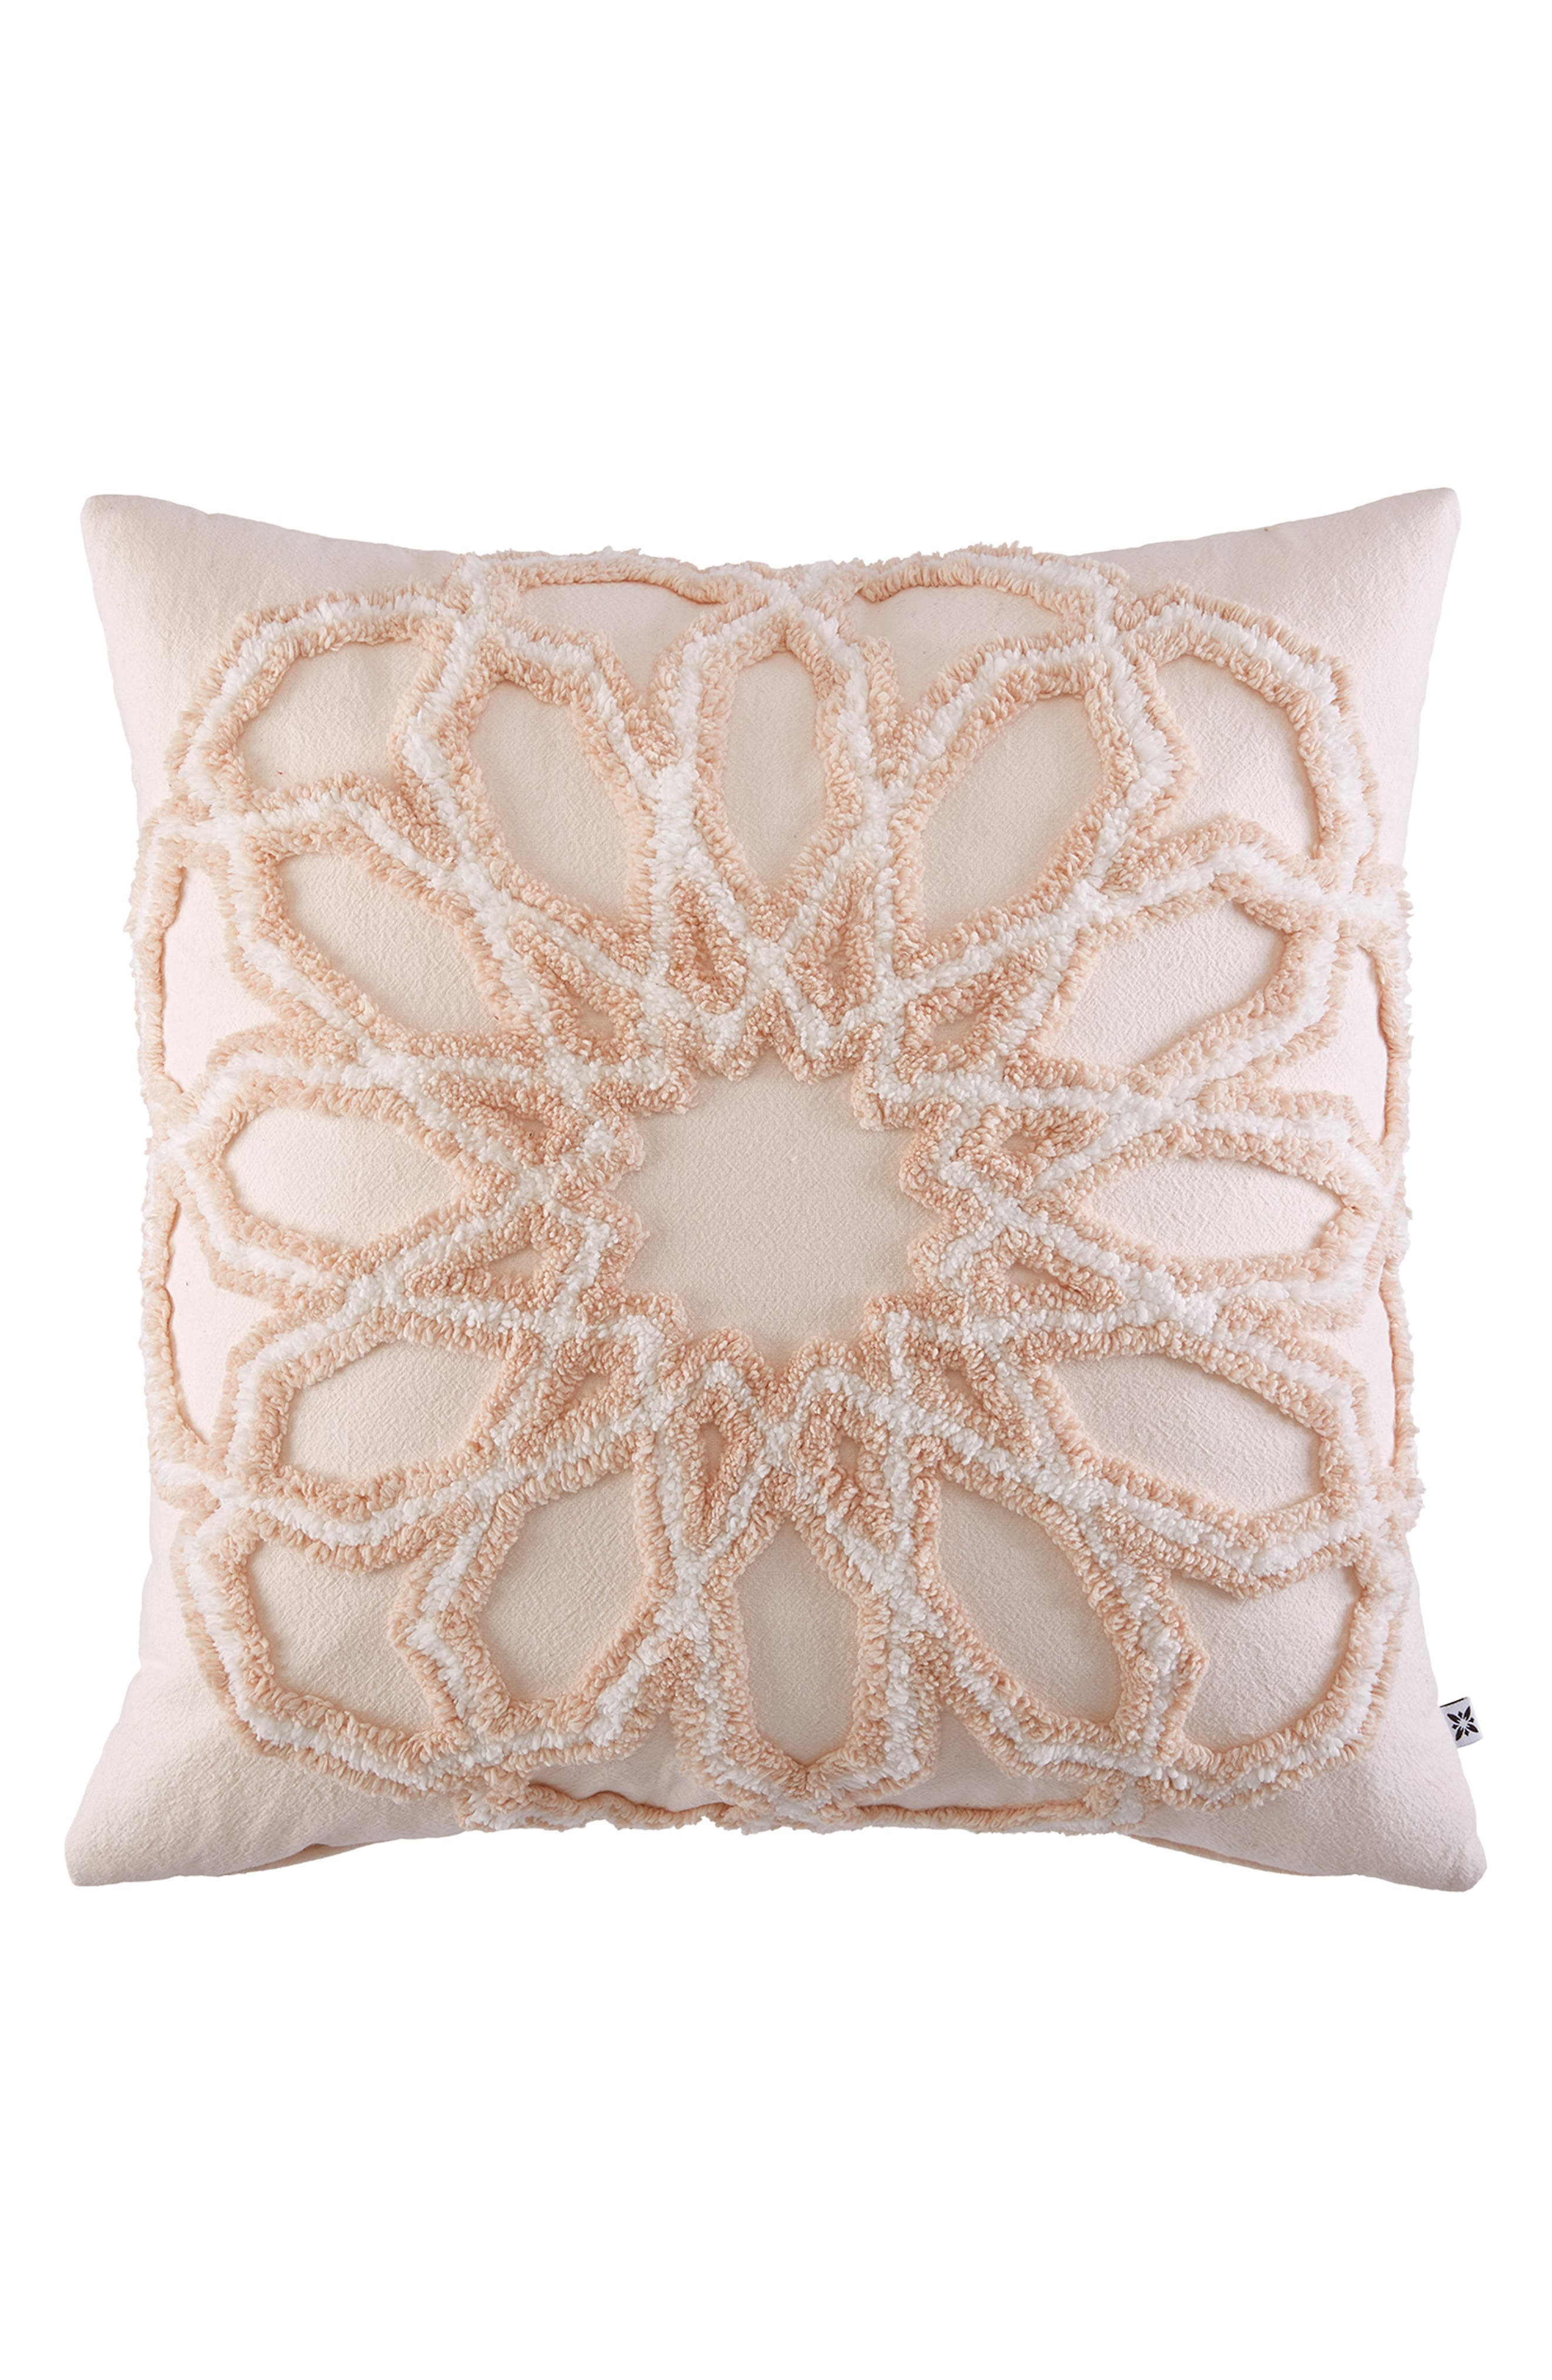 Marrakesh Tufted Accent Pillow,                             Main thumbnail 1, color,                             Pink